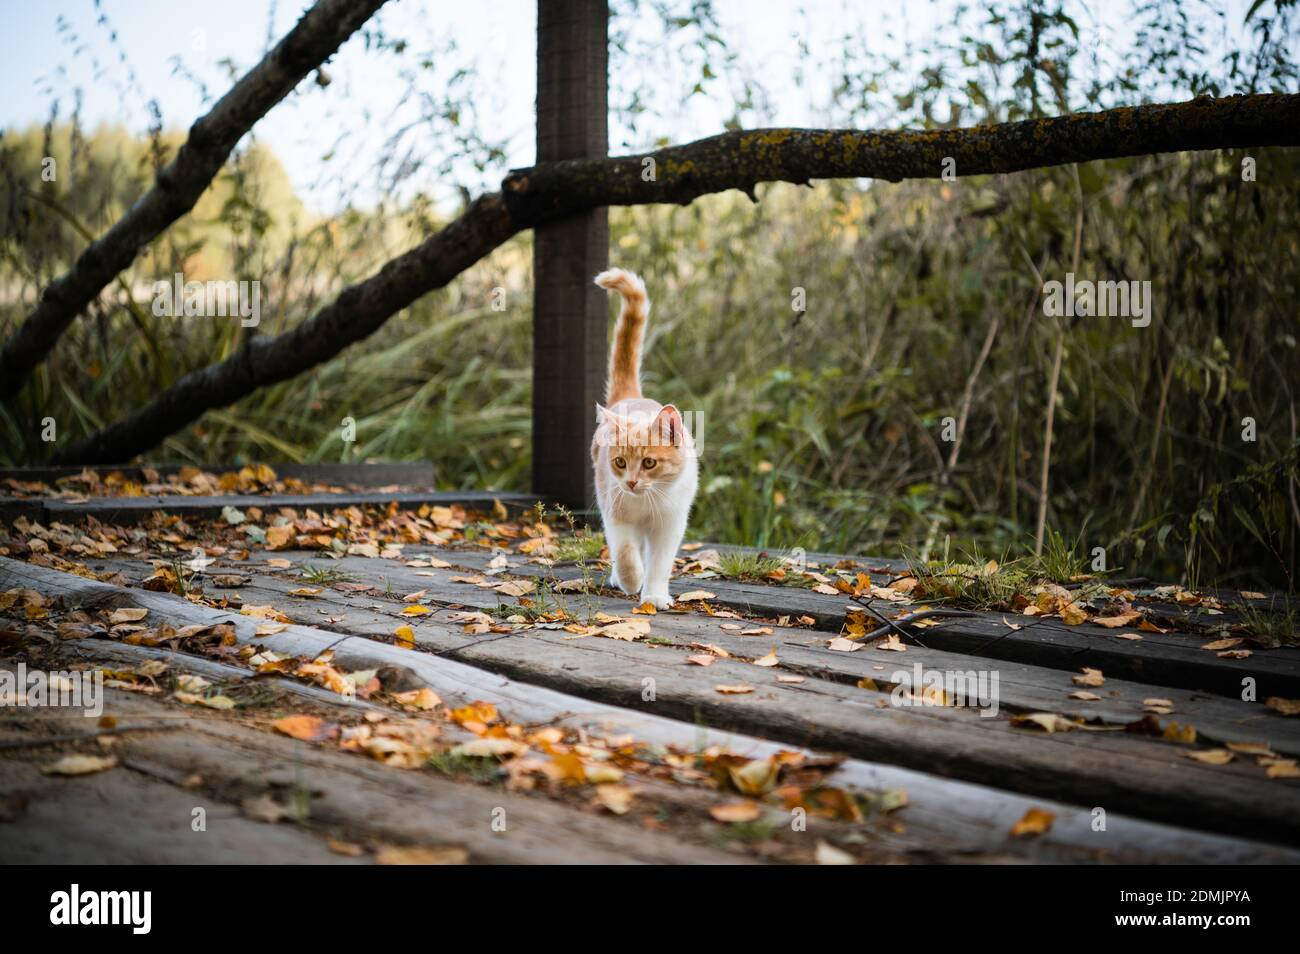 Cute kitten first went for a walk in the forest, playing with leaves on a wooden bridge. Stock Photo